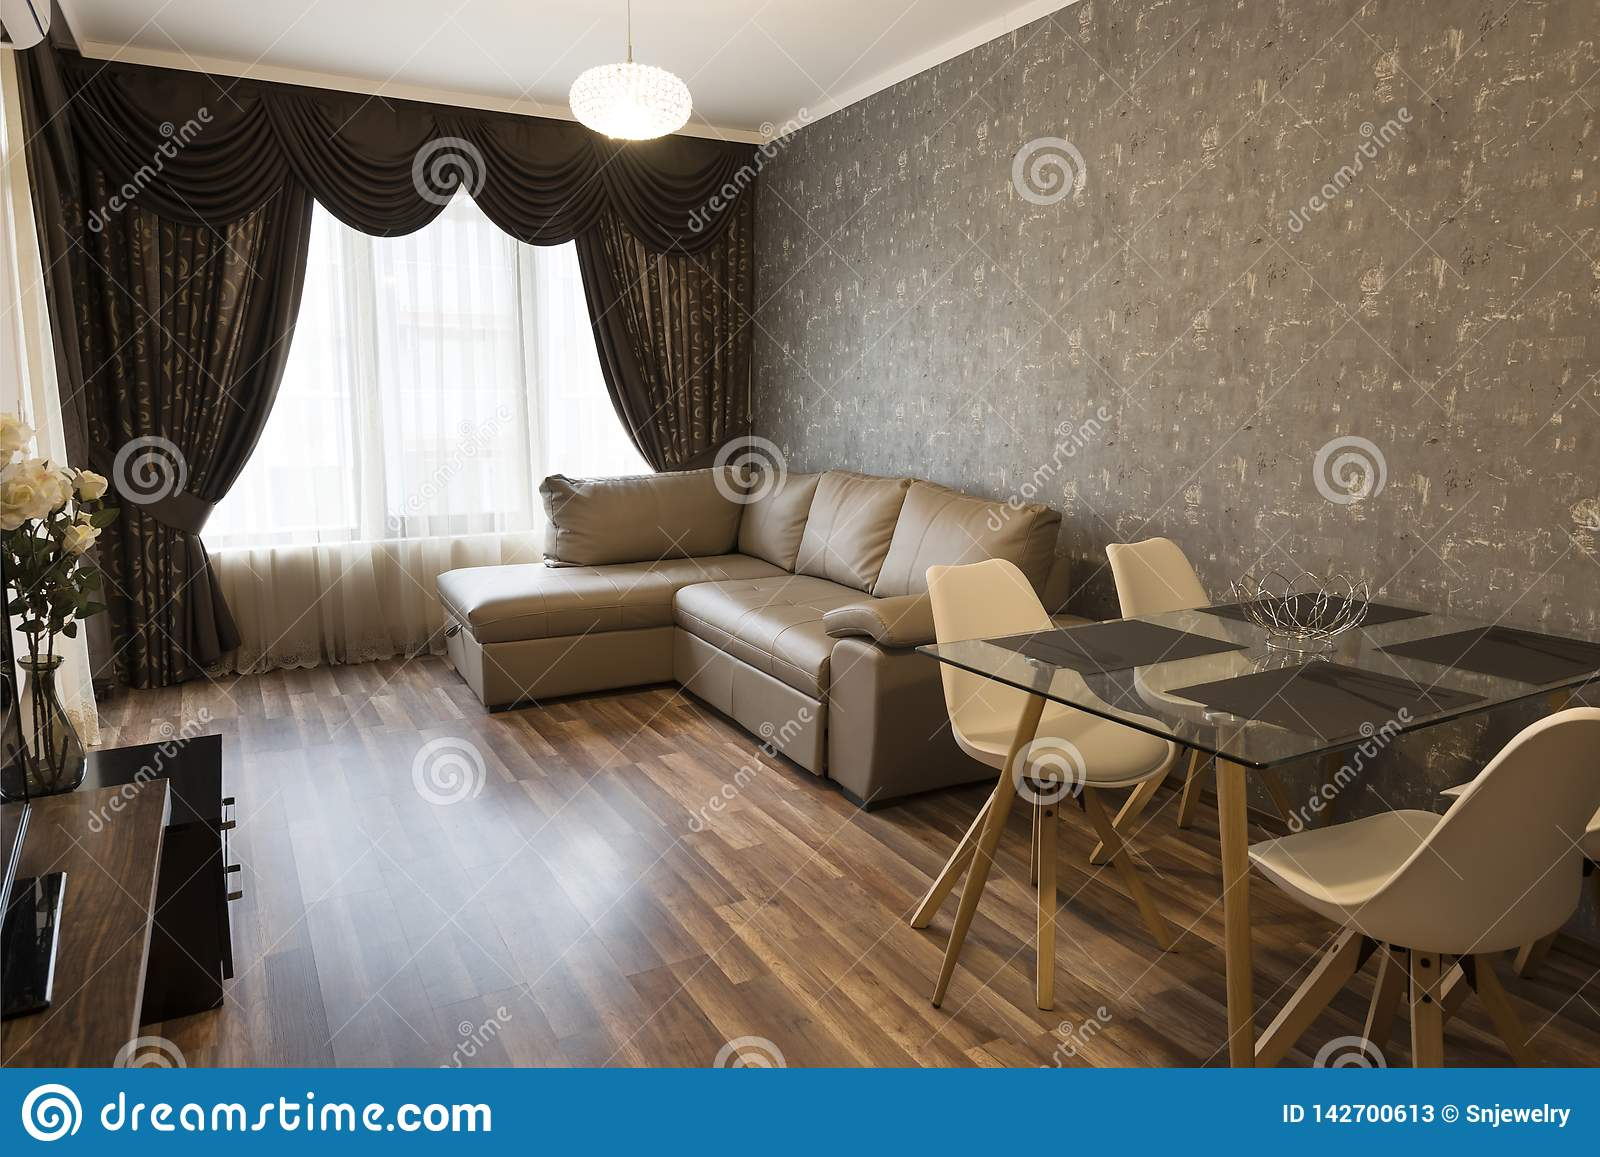 Open Space Living Room New Home Room With Brown Color Tone Furniture Windows With Long Curtains Drapery And Sheers Interior Stock Image Image Of Designer Furniture 142700613